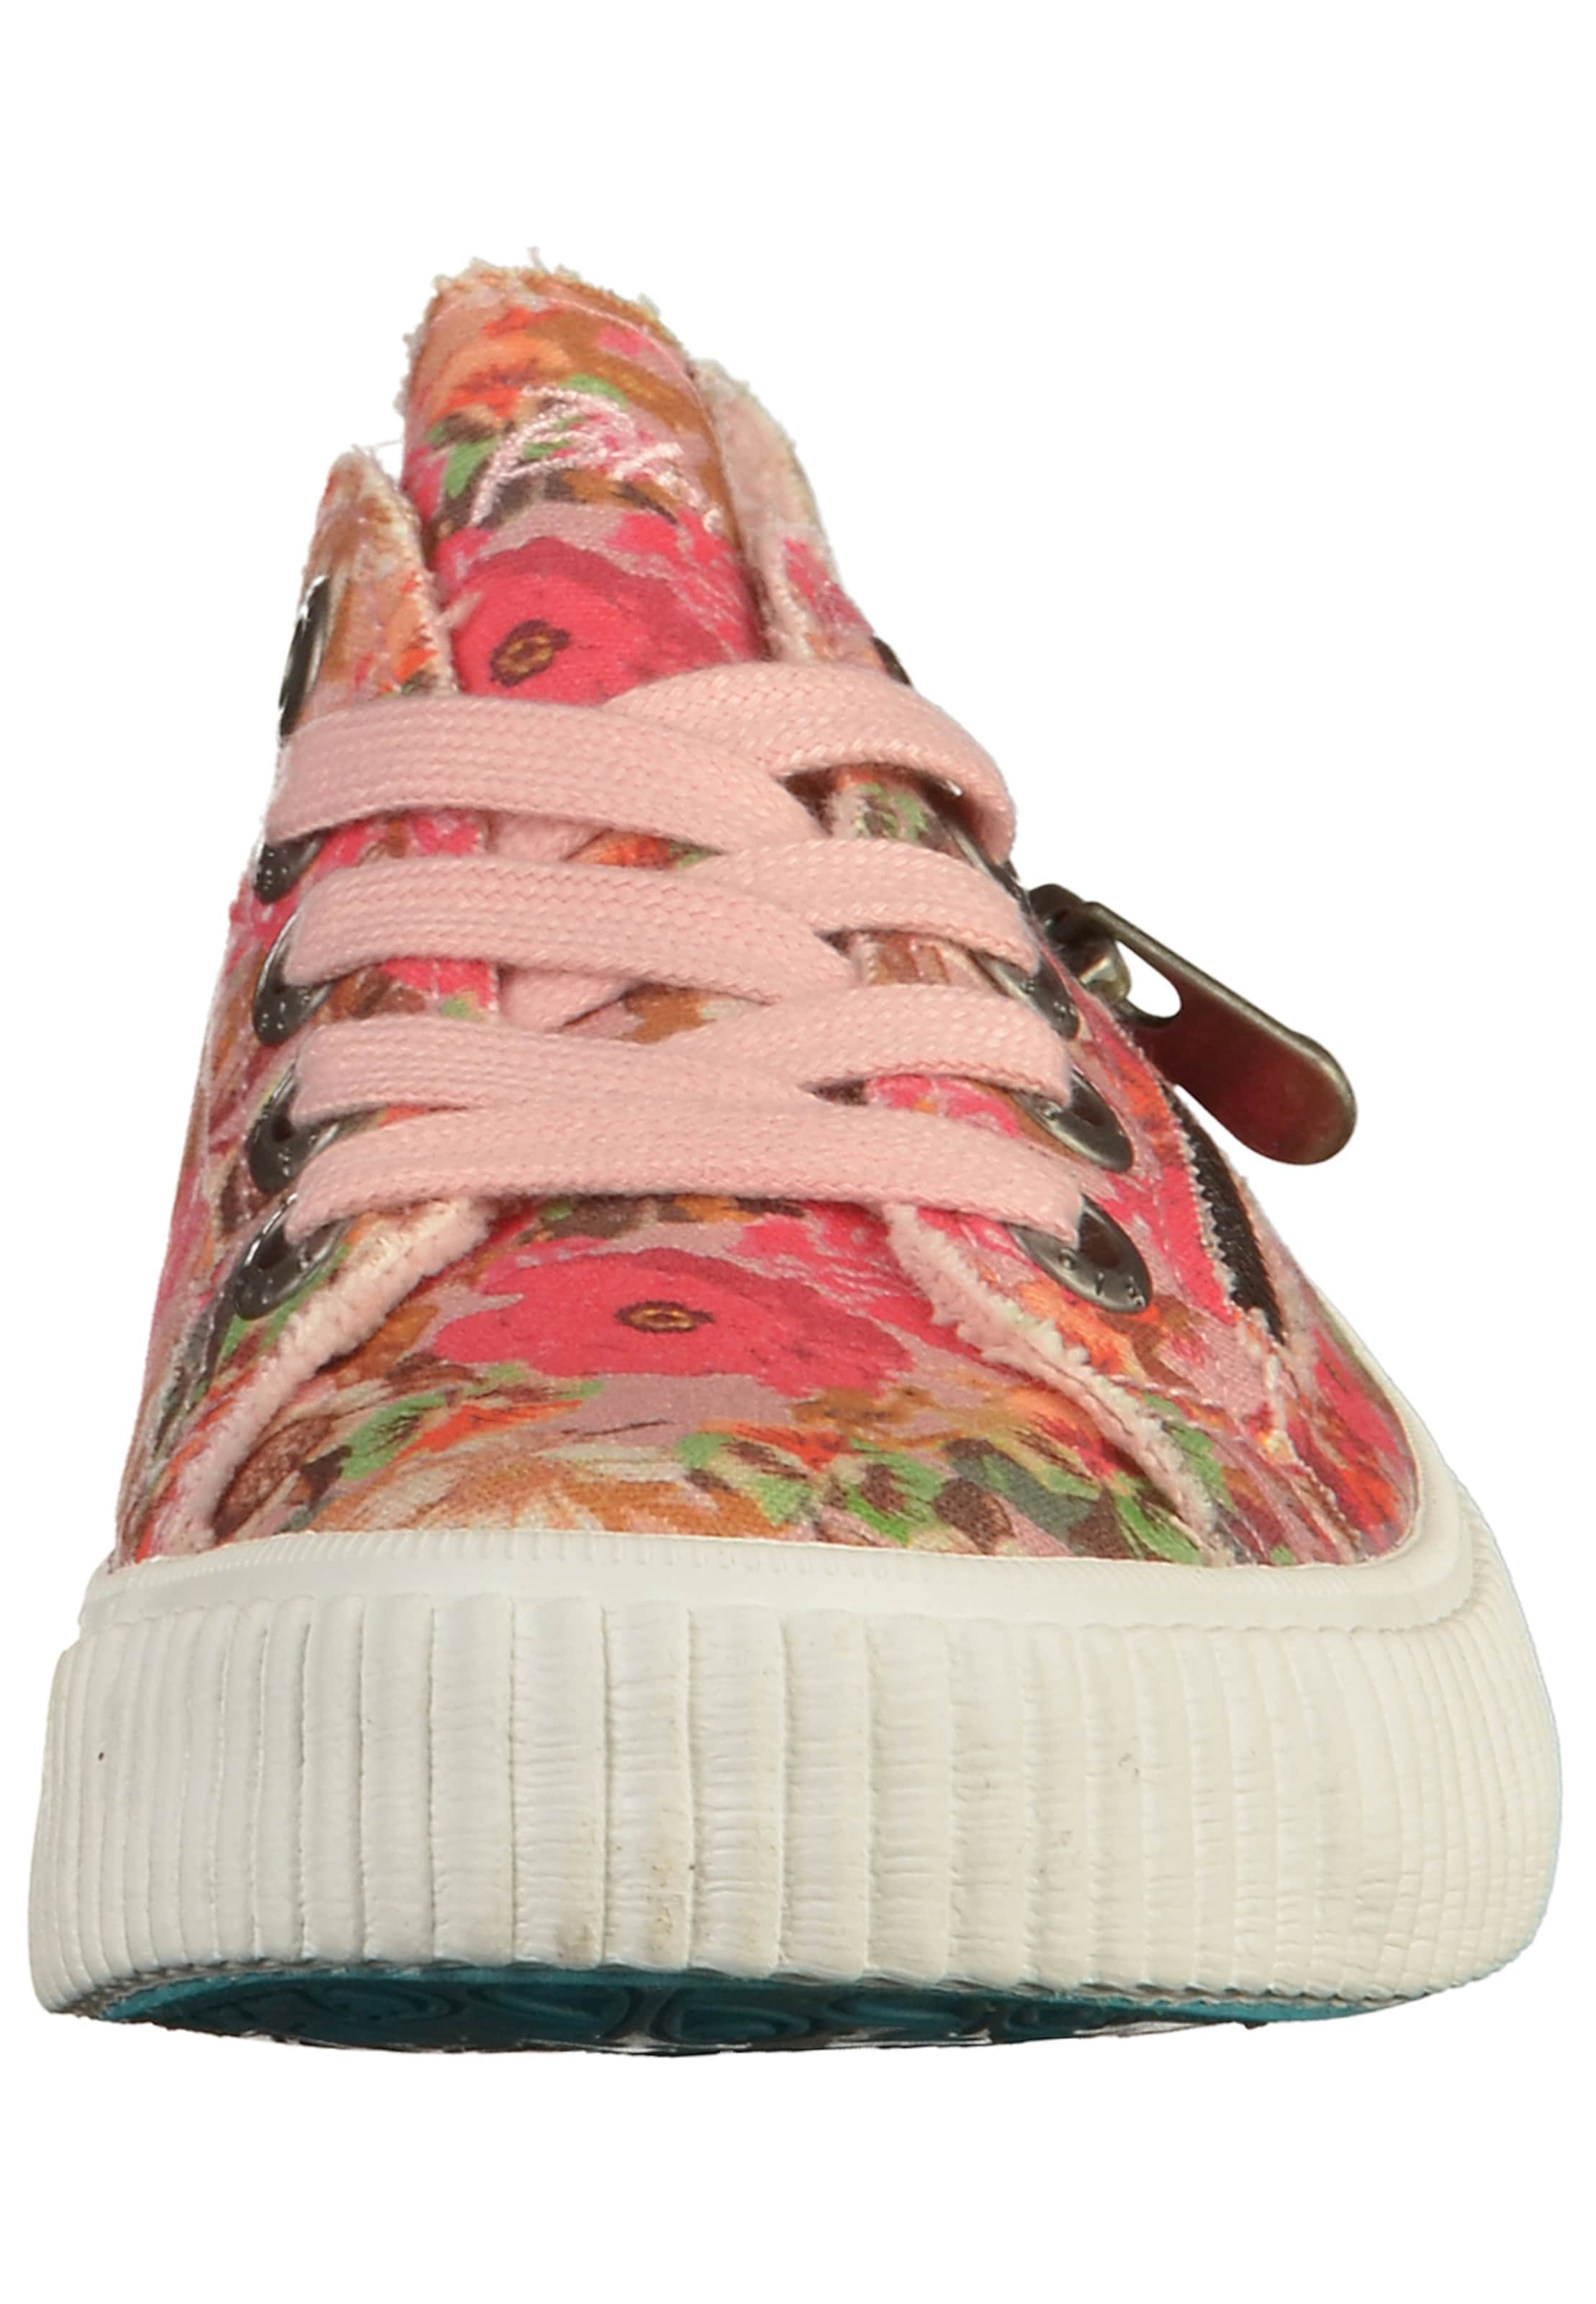 Hellrot Blowfish Sneaker HellorangePink Sneaker HellorangePink Blowfish In Hellrot In Blowfish SzVUMpqG